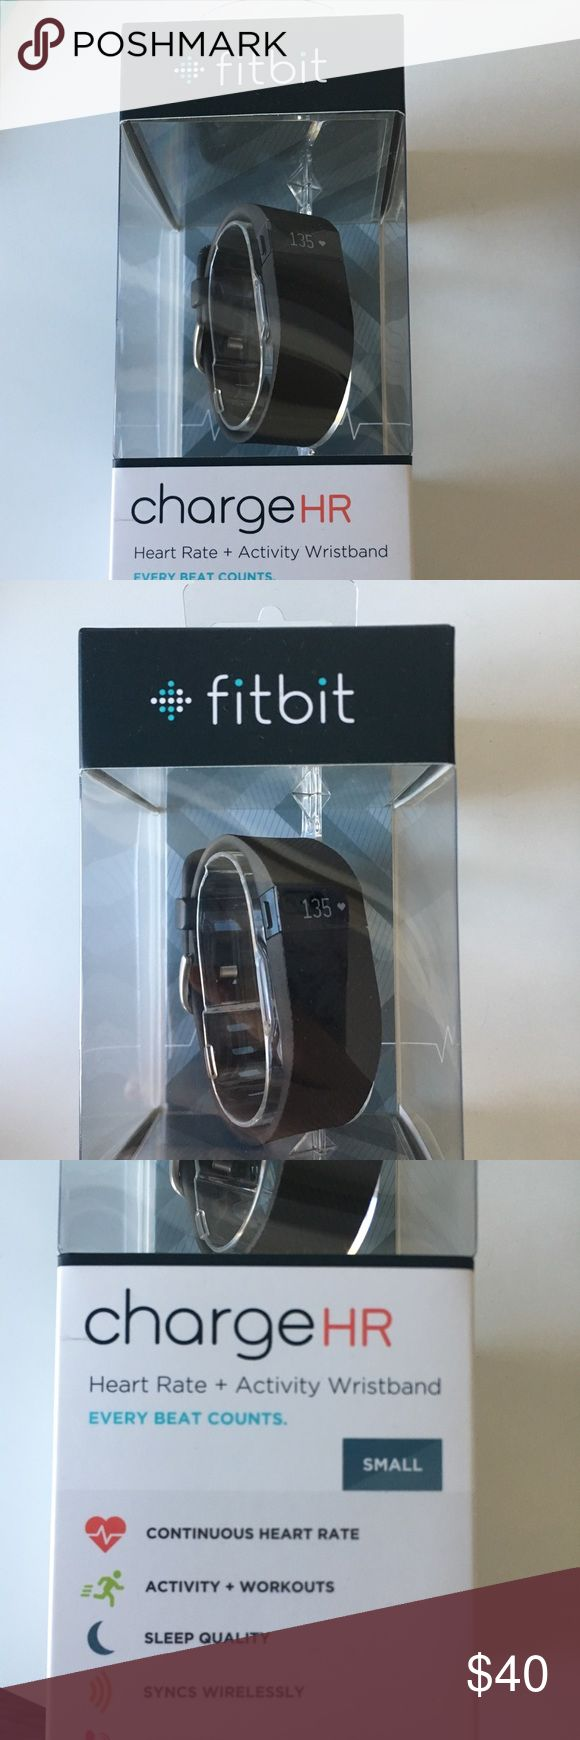 Fitbit Charge HR new and in box, track heart rate, sleep, activity, syncs wirelessly Accessories Watches